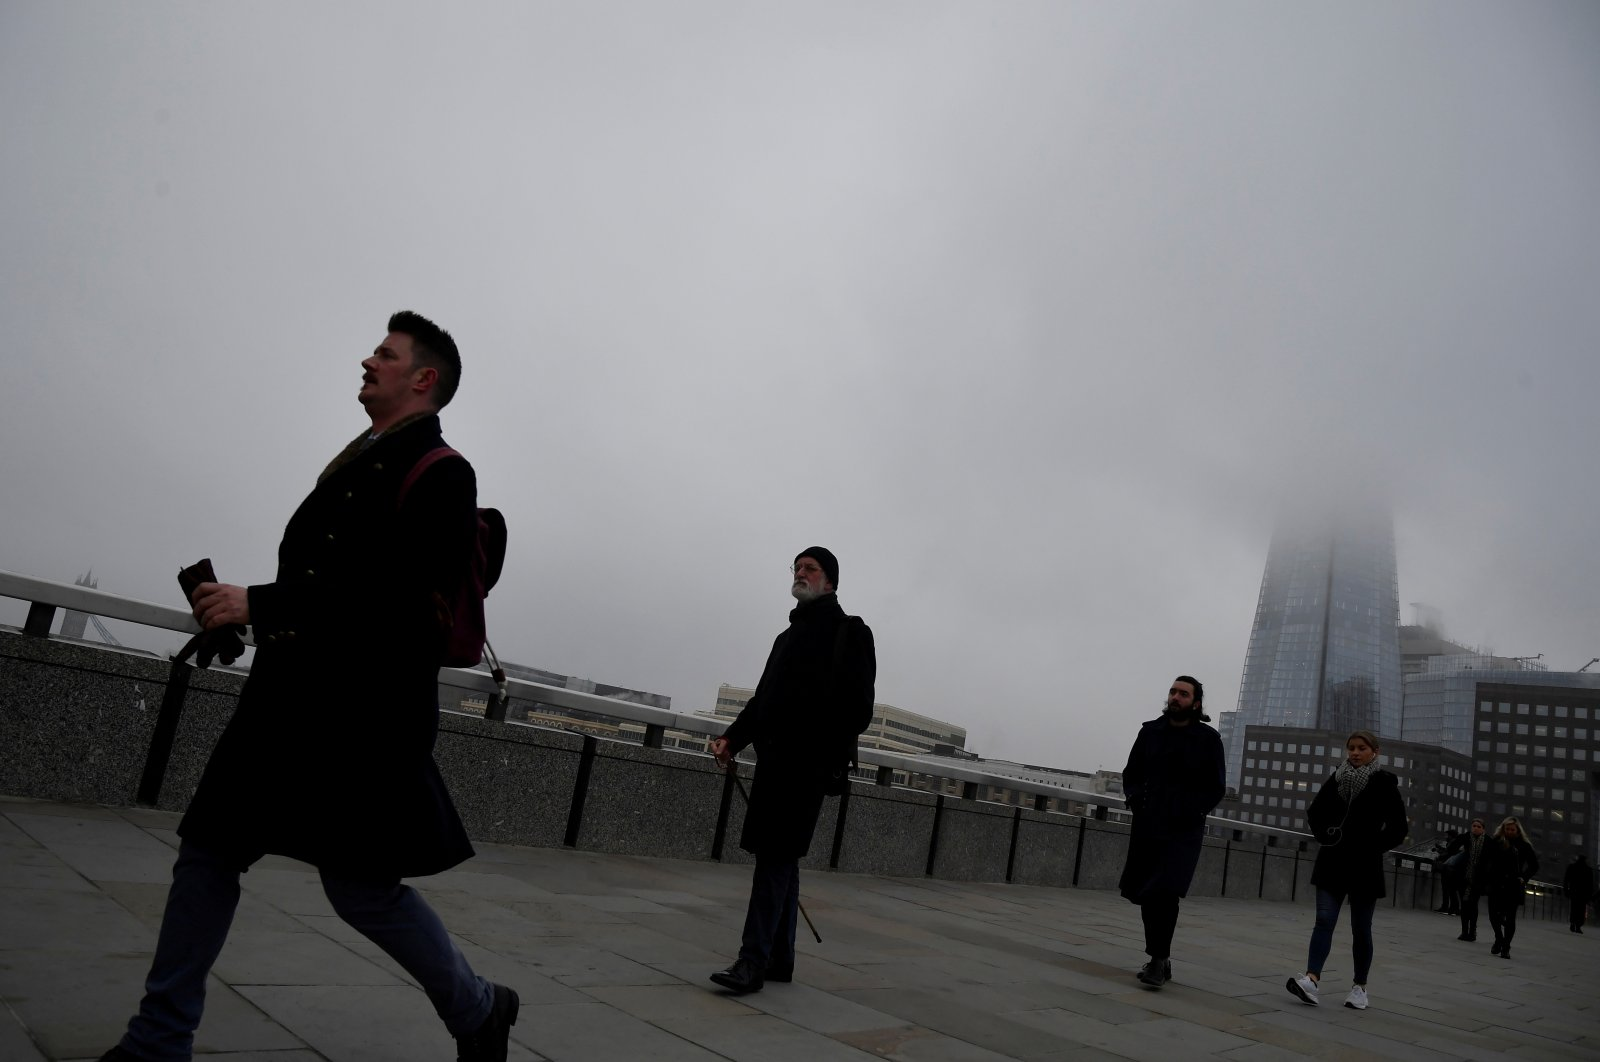 Workers cross the London Bridge on a foggy morning amid the spread of COVID-19, London, Britain, Dec. 7, 2020. (Reuters Photo)